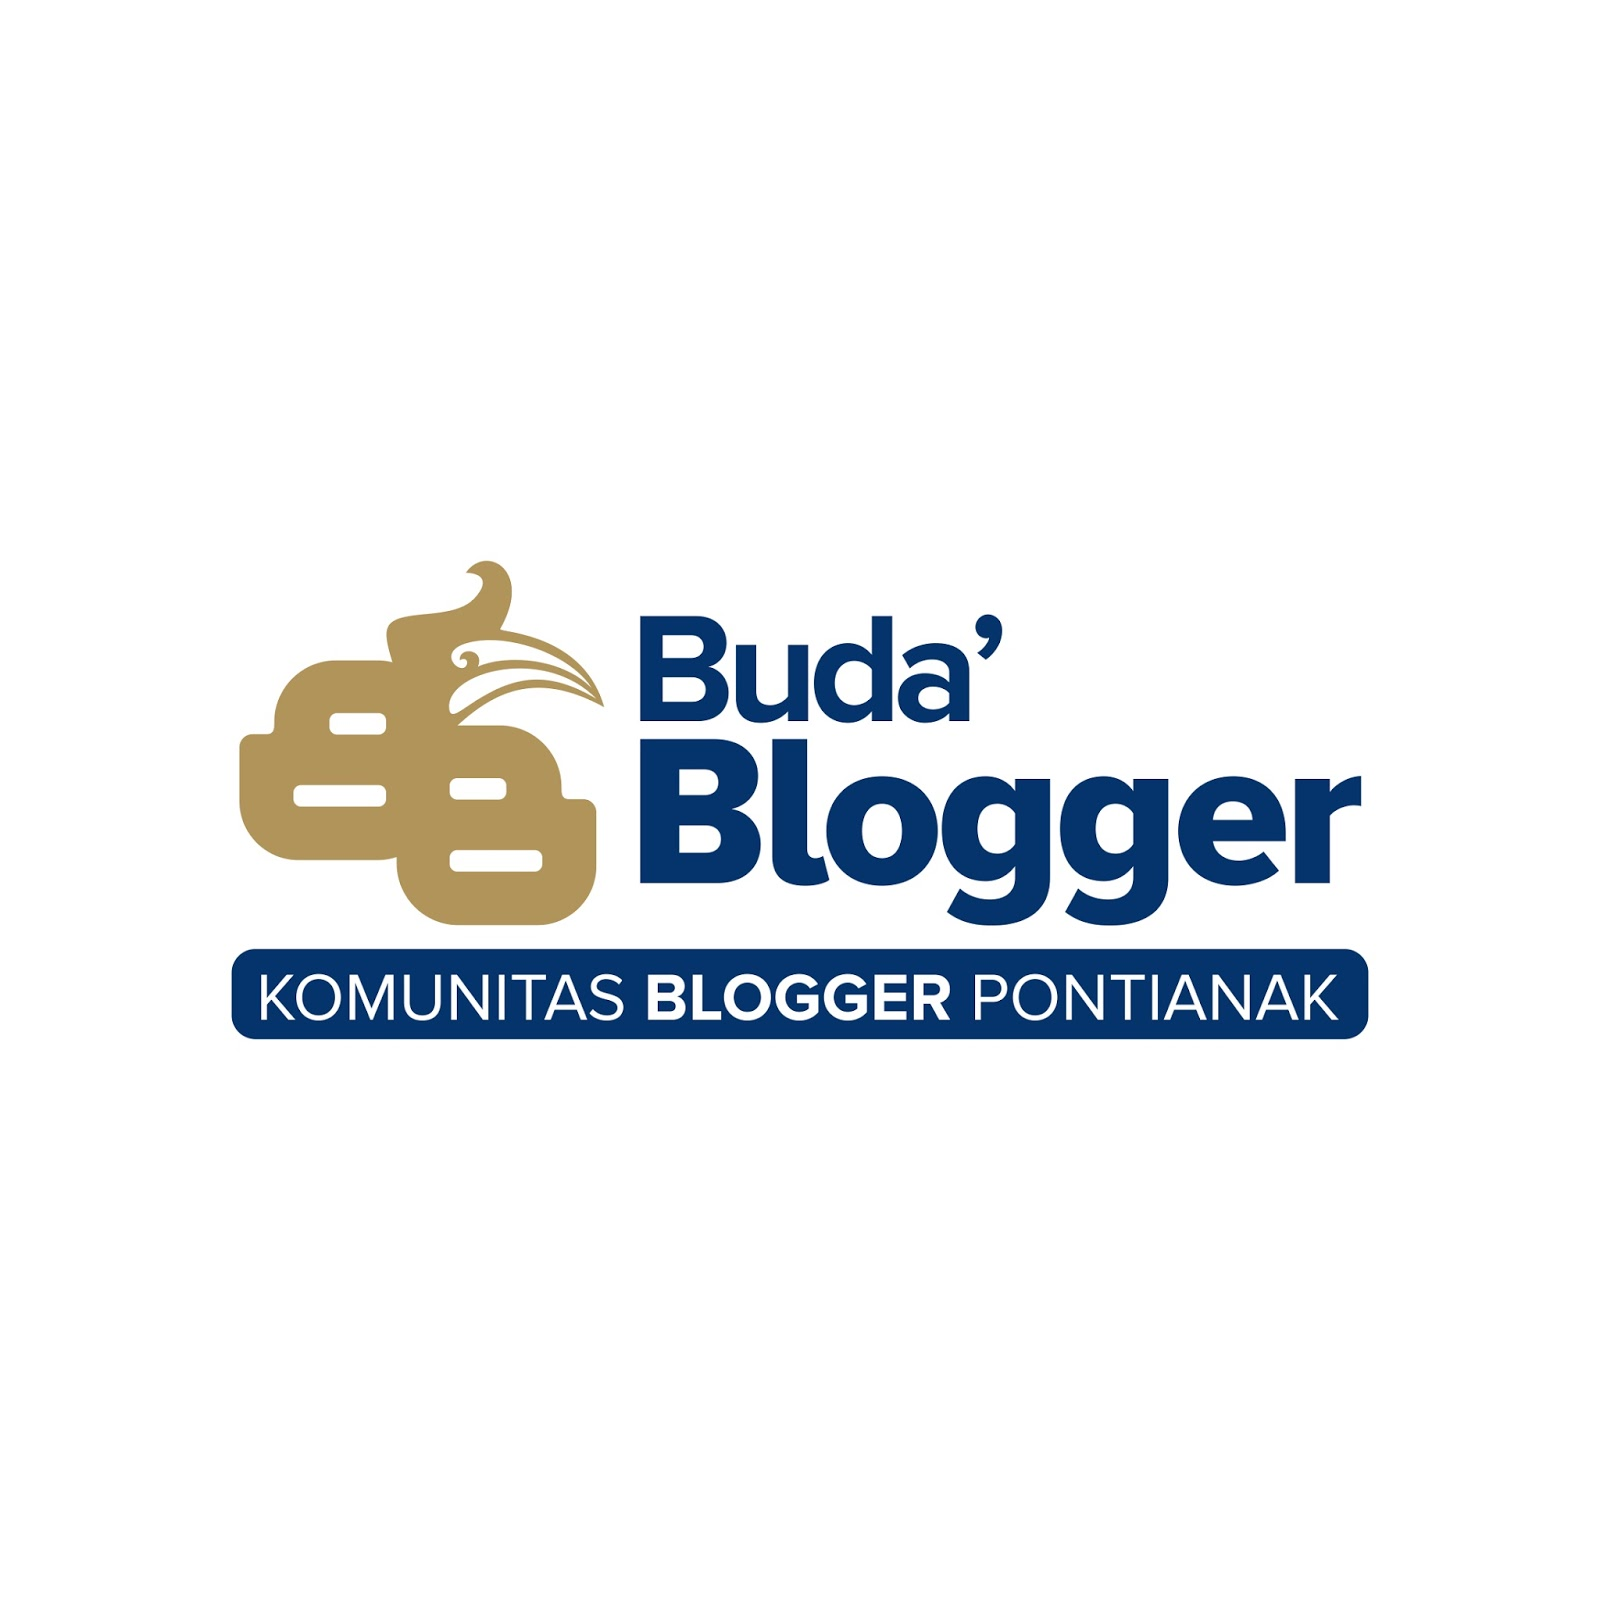 Komunitas Blogger Pontianak